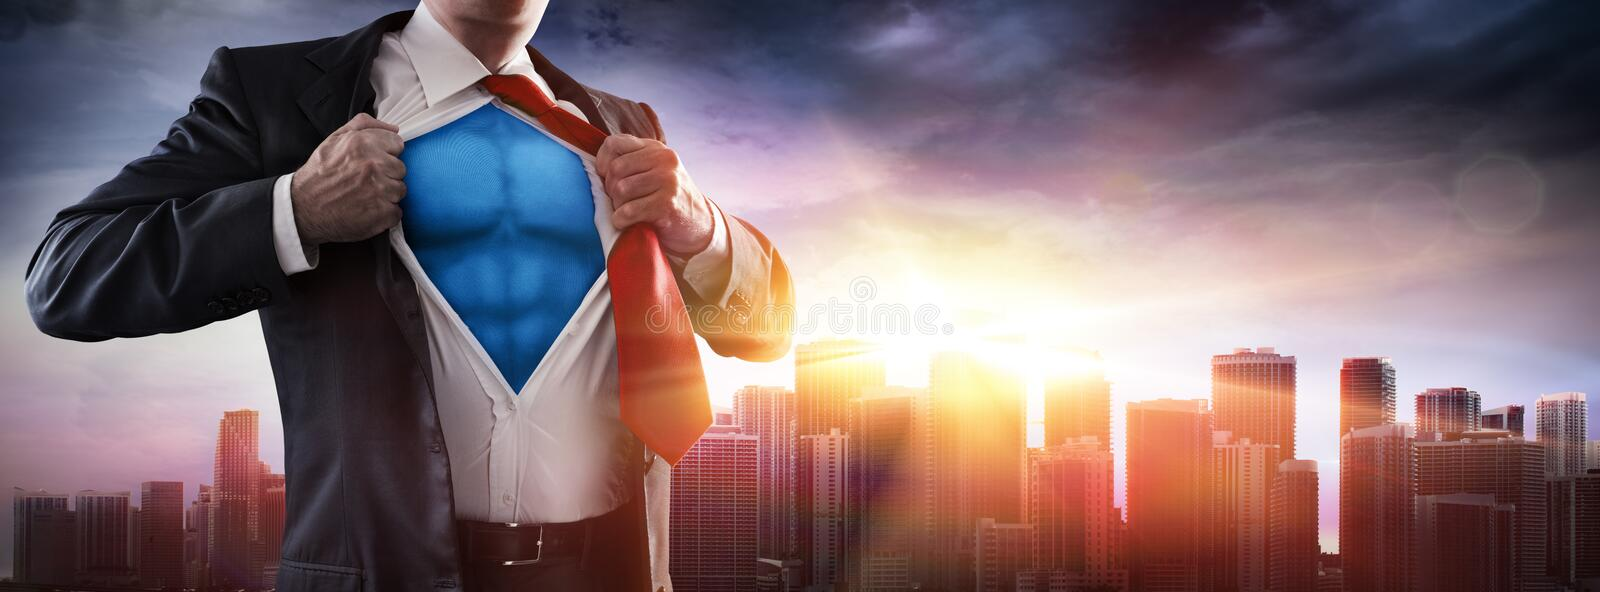 Businessman Superhero With Sunset royalty free stock photography